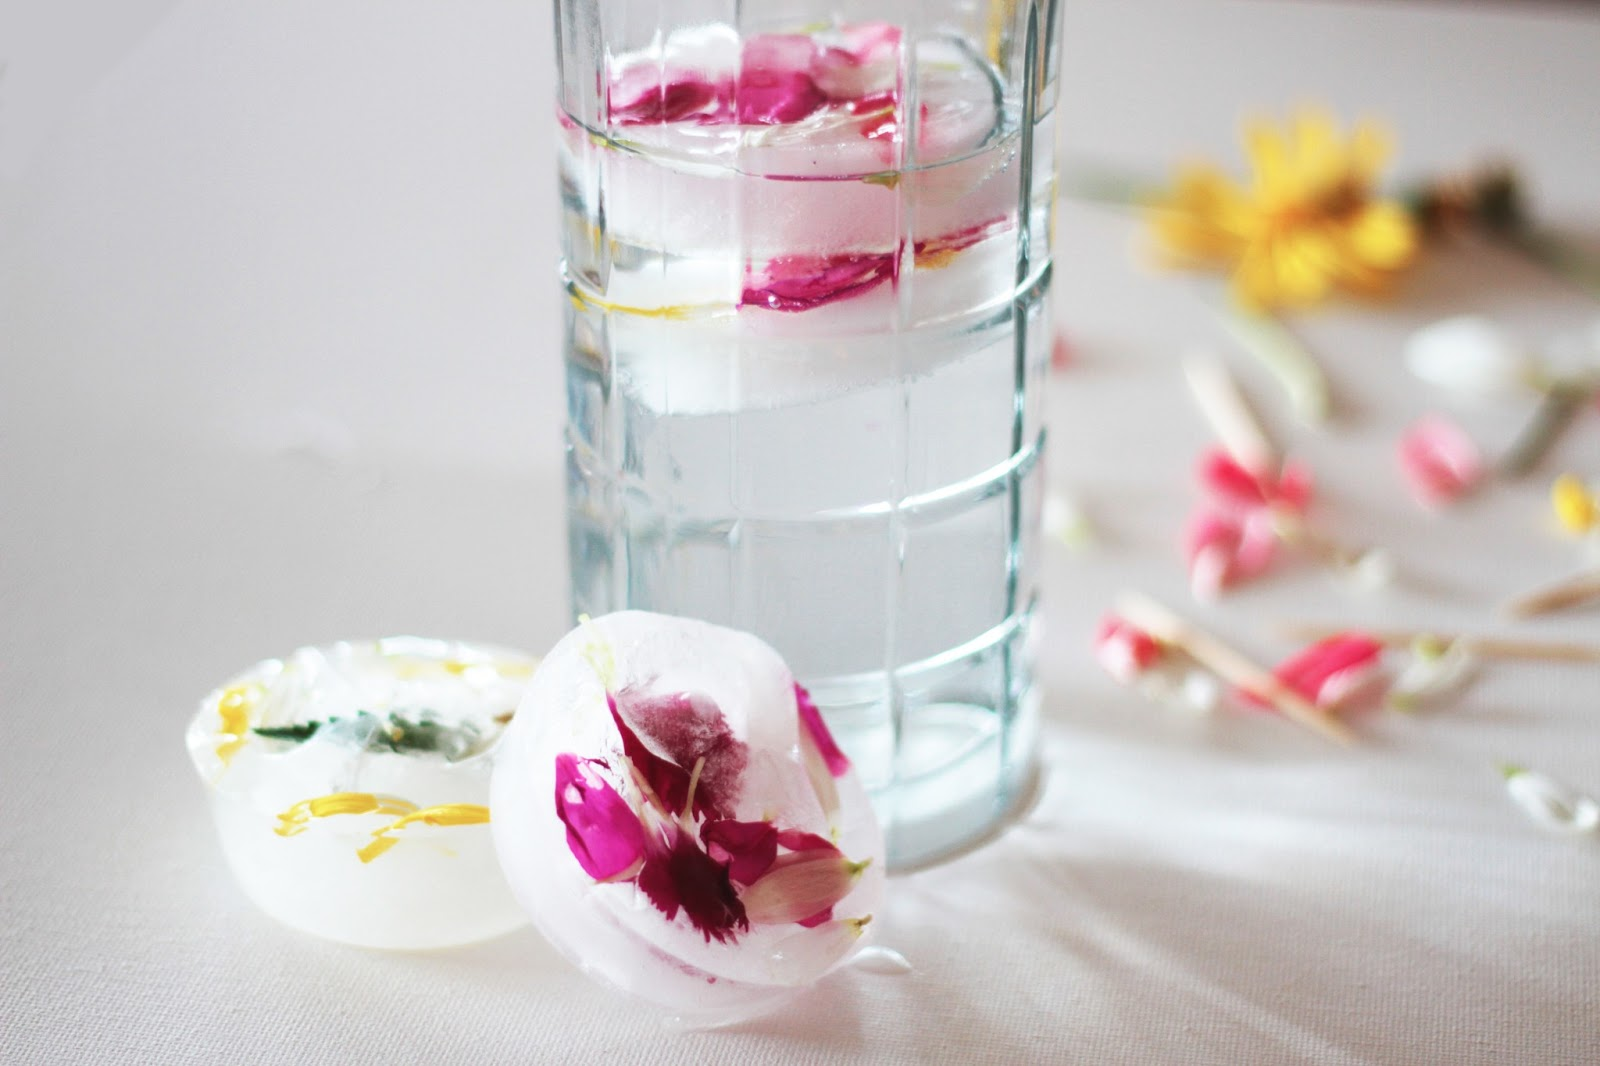 Dress Up Your Valentine's Day Cocktails With These Pretty Floral Ice Cubes